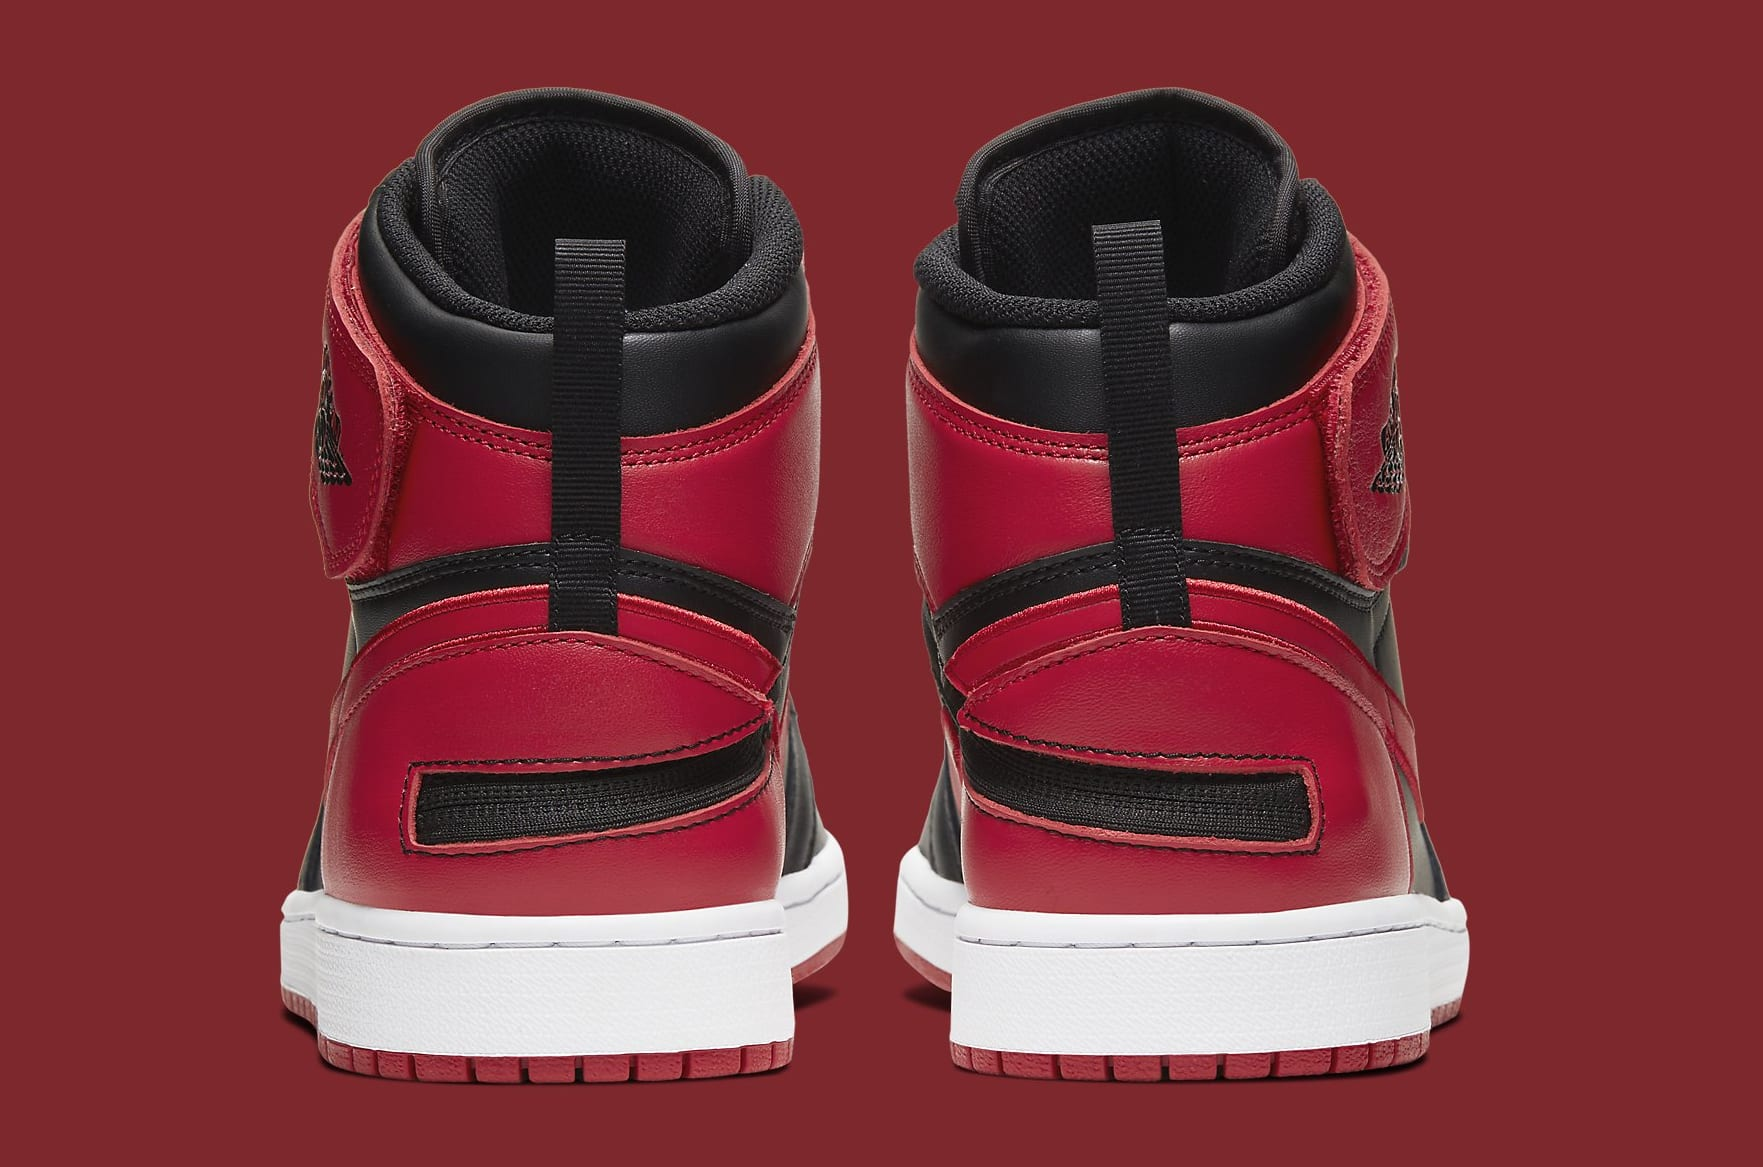 air-jordan-1-high-flyease-black-red-white-cq3835-001-heel